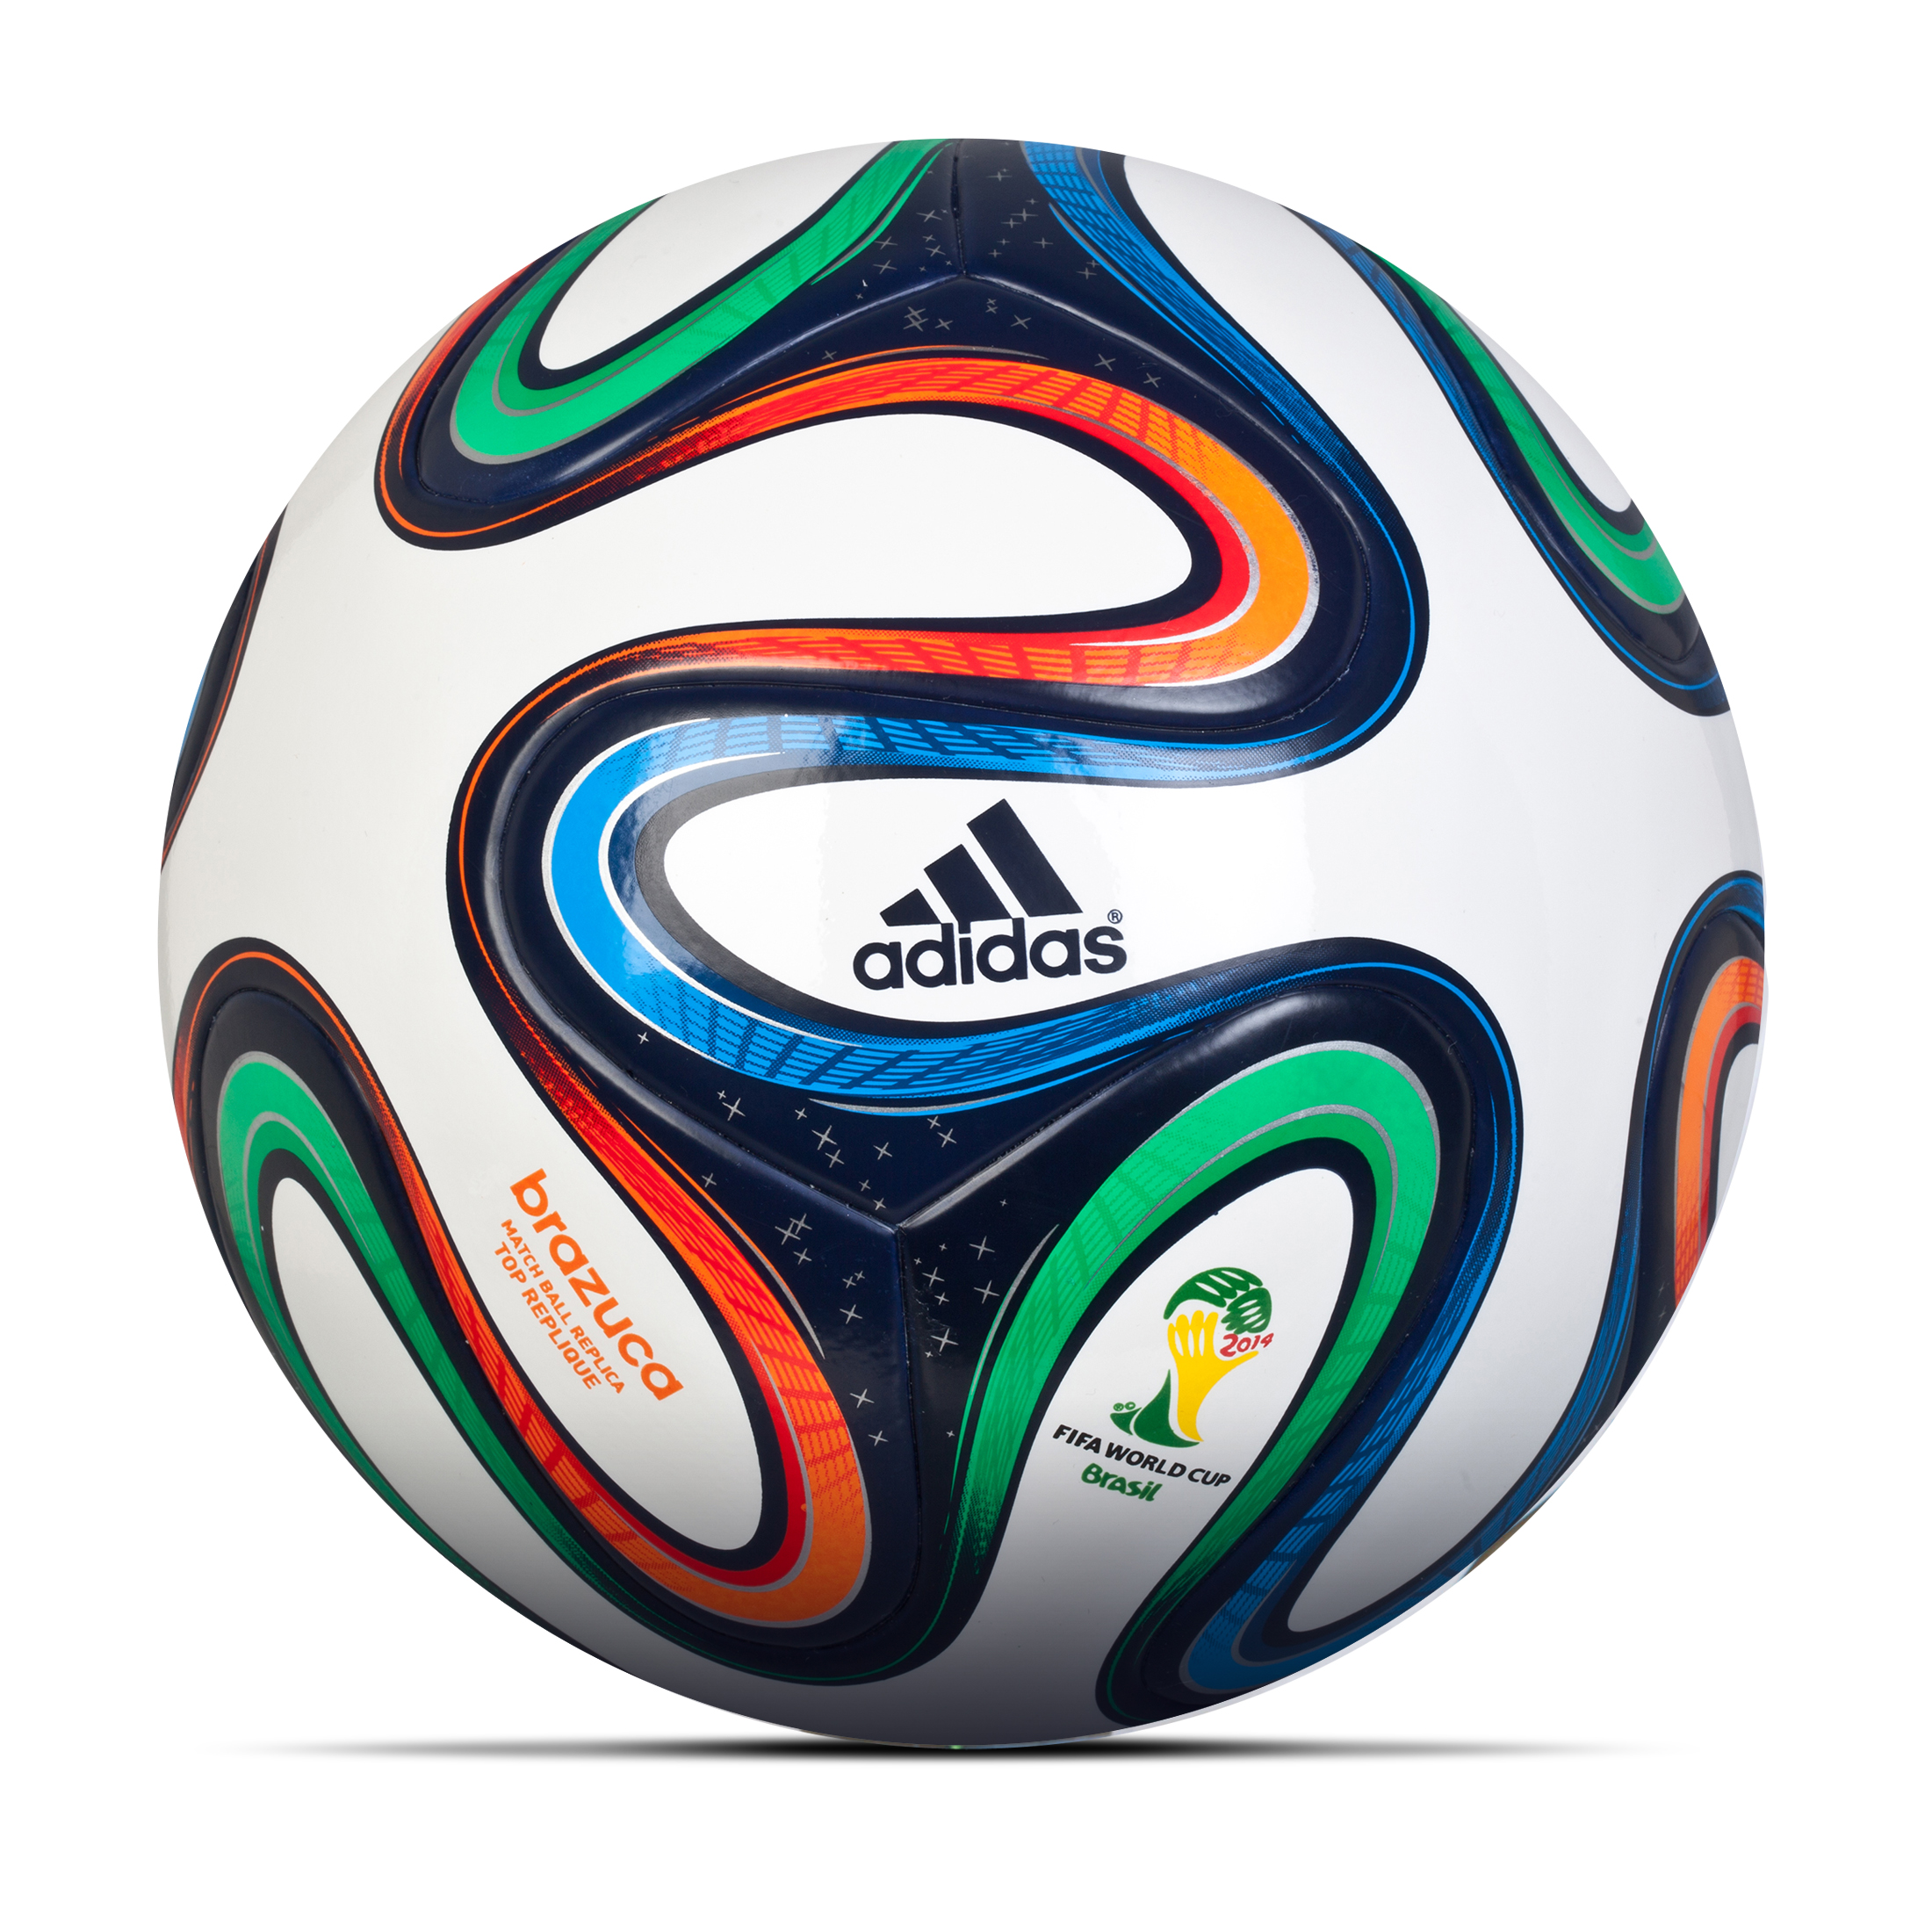 Adidas Brazuca Top Replique Football - Size 5 White